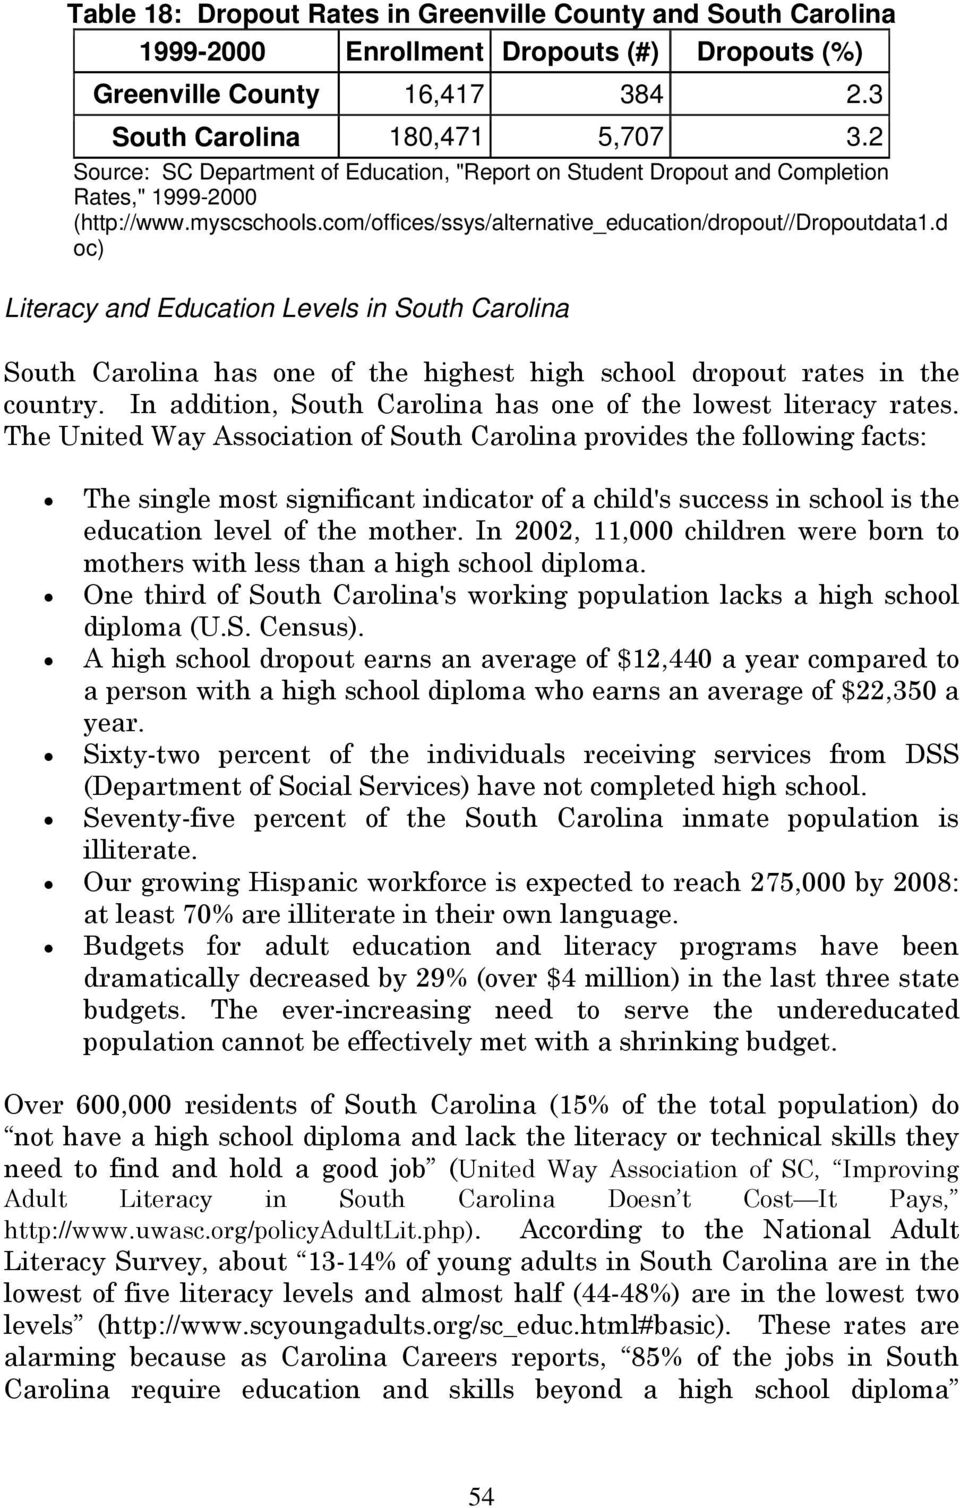 d oc) Literacy and Education Levels in South Carolina South Carolina has one of the highest high school dropout rates in the country. In addition, South Carolina has one of the lowest literacy rates.